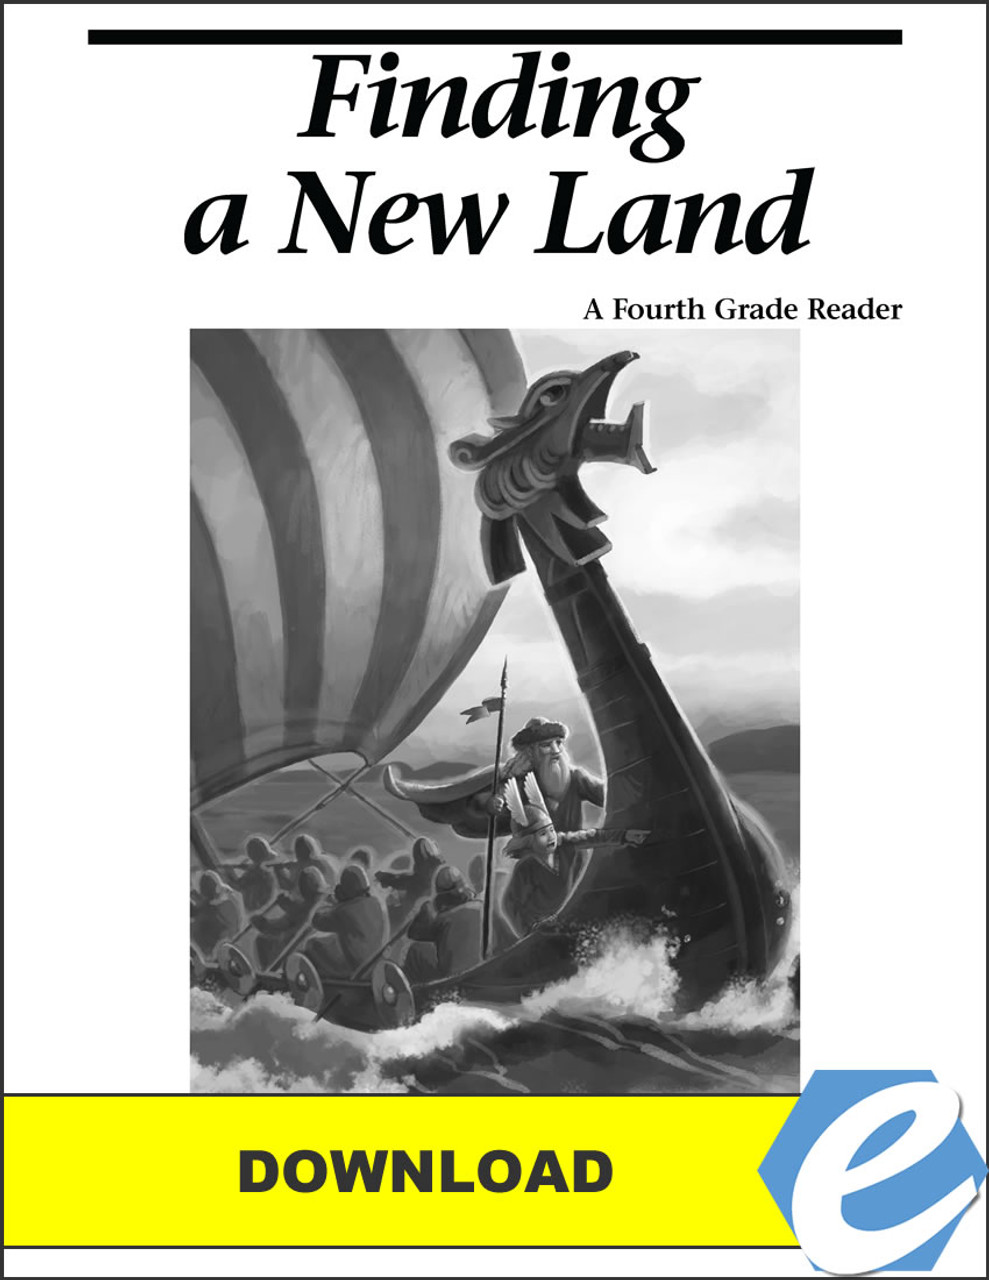 Finding a New Land - Test Packet - PDF Download